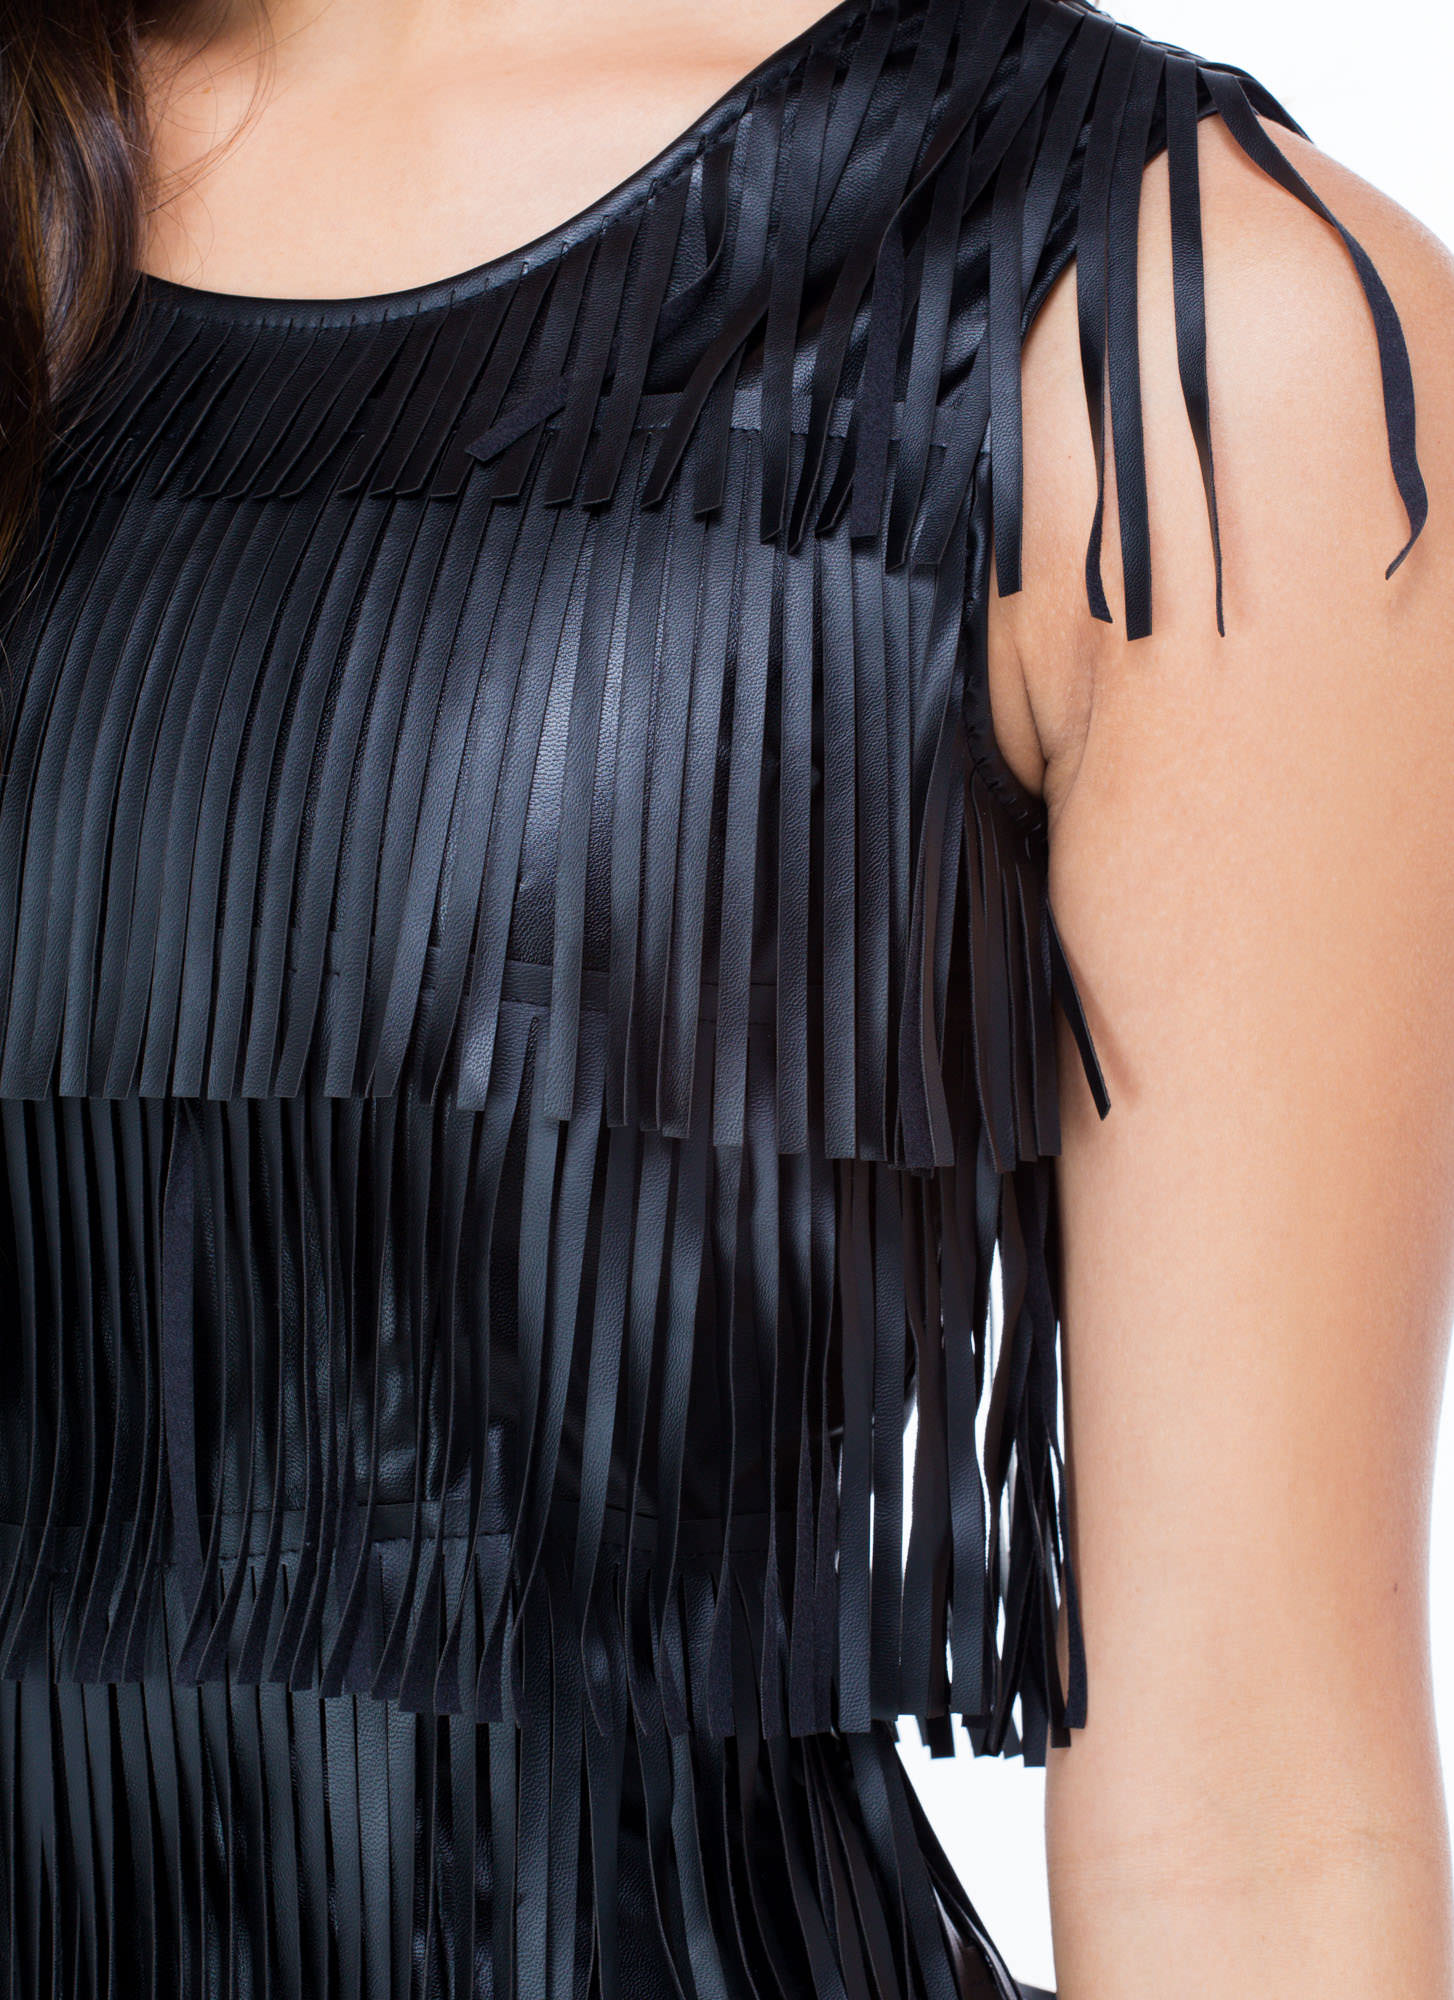 Fringe Benefits Faux Leather Dress BLACK